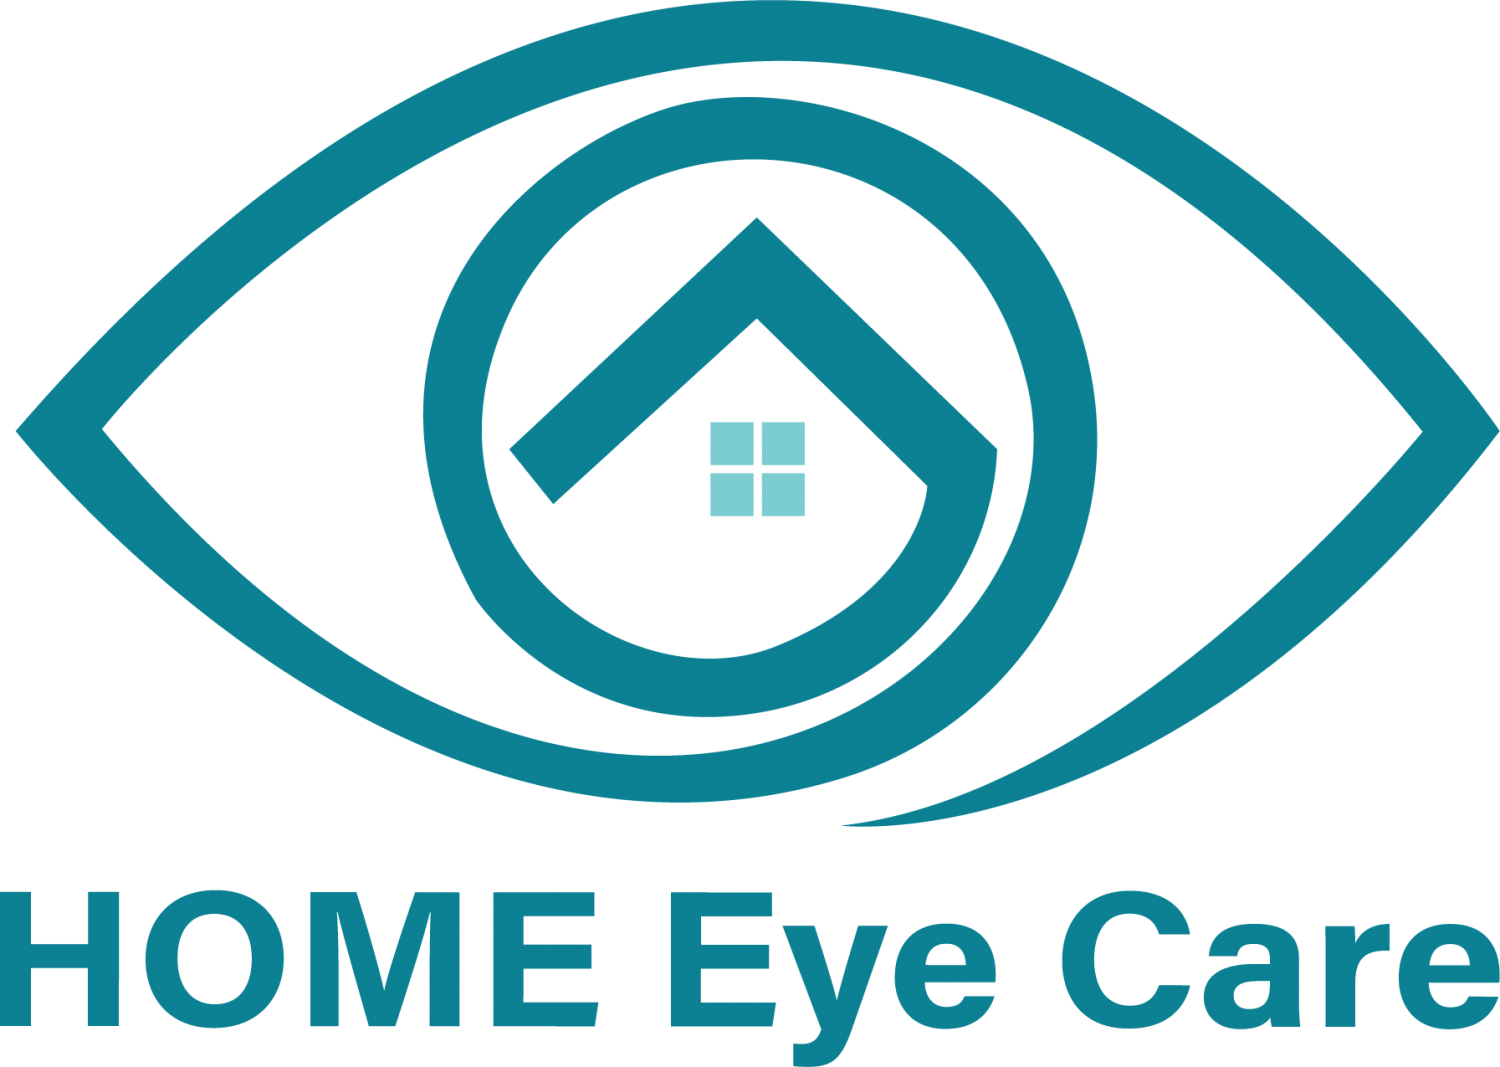 Dự án: Home Eyes Care